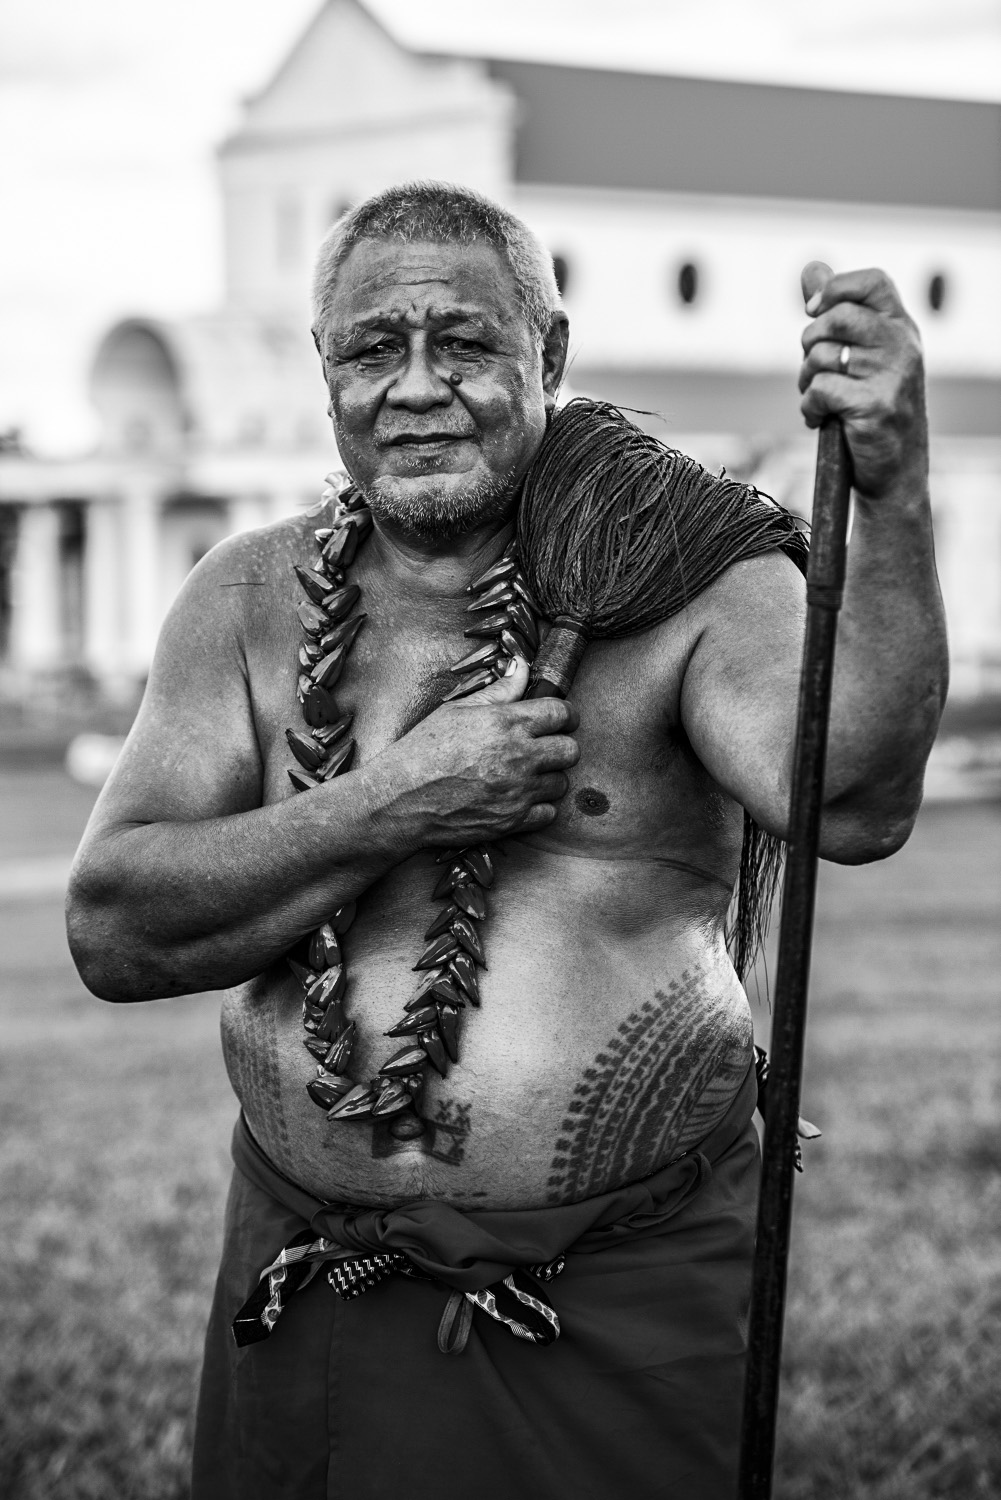 image of AARONTAIT COPYRIGHTED 2014 253 SAMOA TATAU TRADITION TATTOO PACIFIC UPOLU SAVAII CHIEFS VILLAGE FAA SAMOA PEA MALU DOCUMENTARY PHOTOGRAPHER BLACK WHITE PORTRAIT